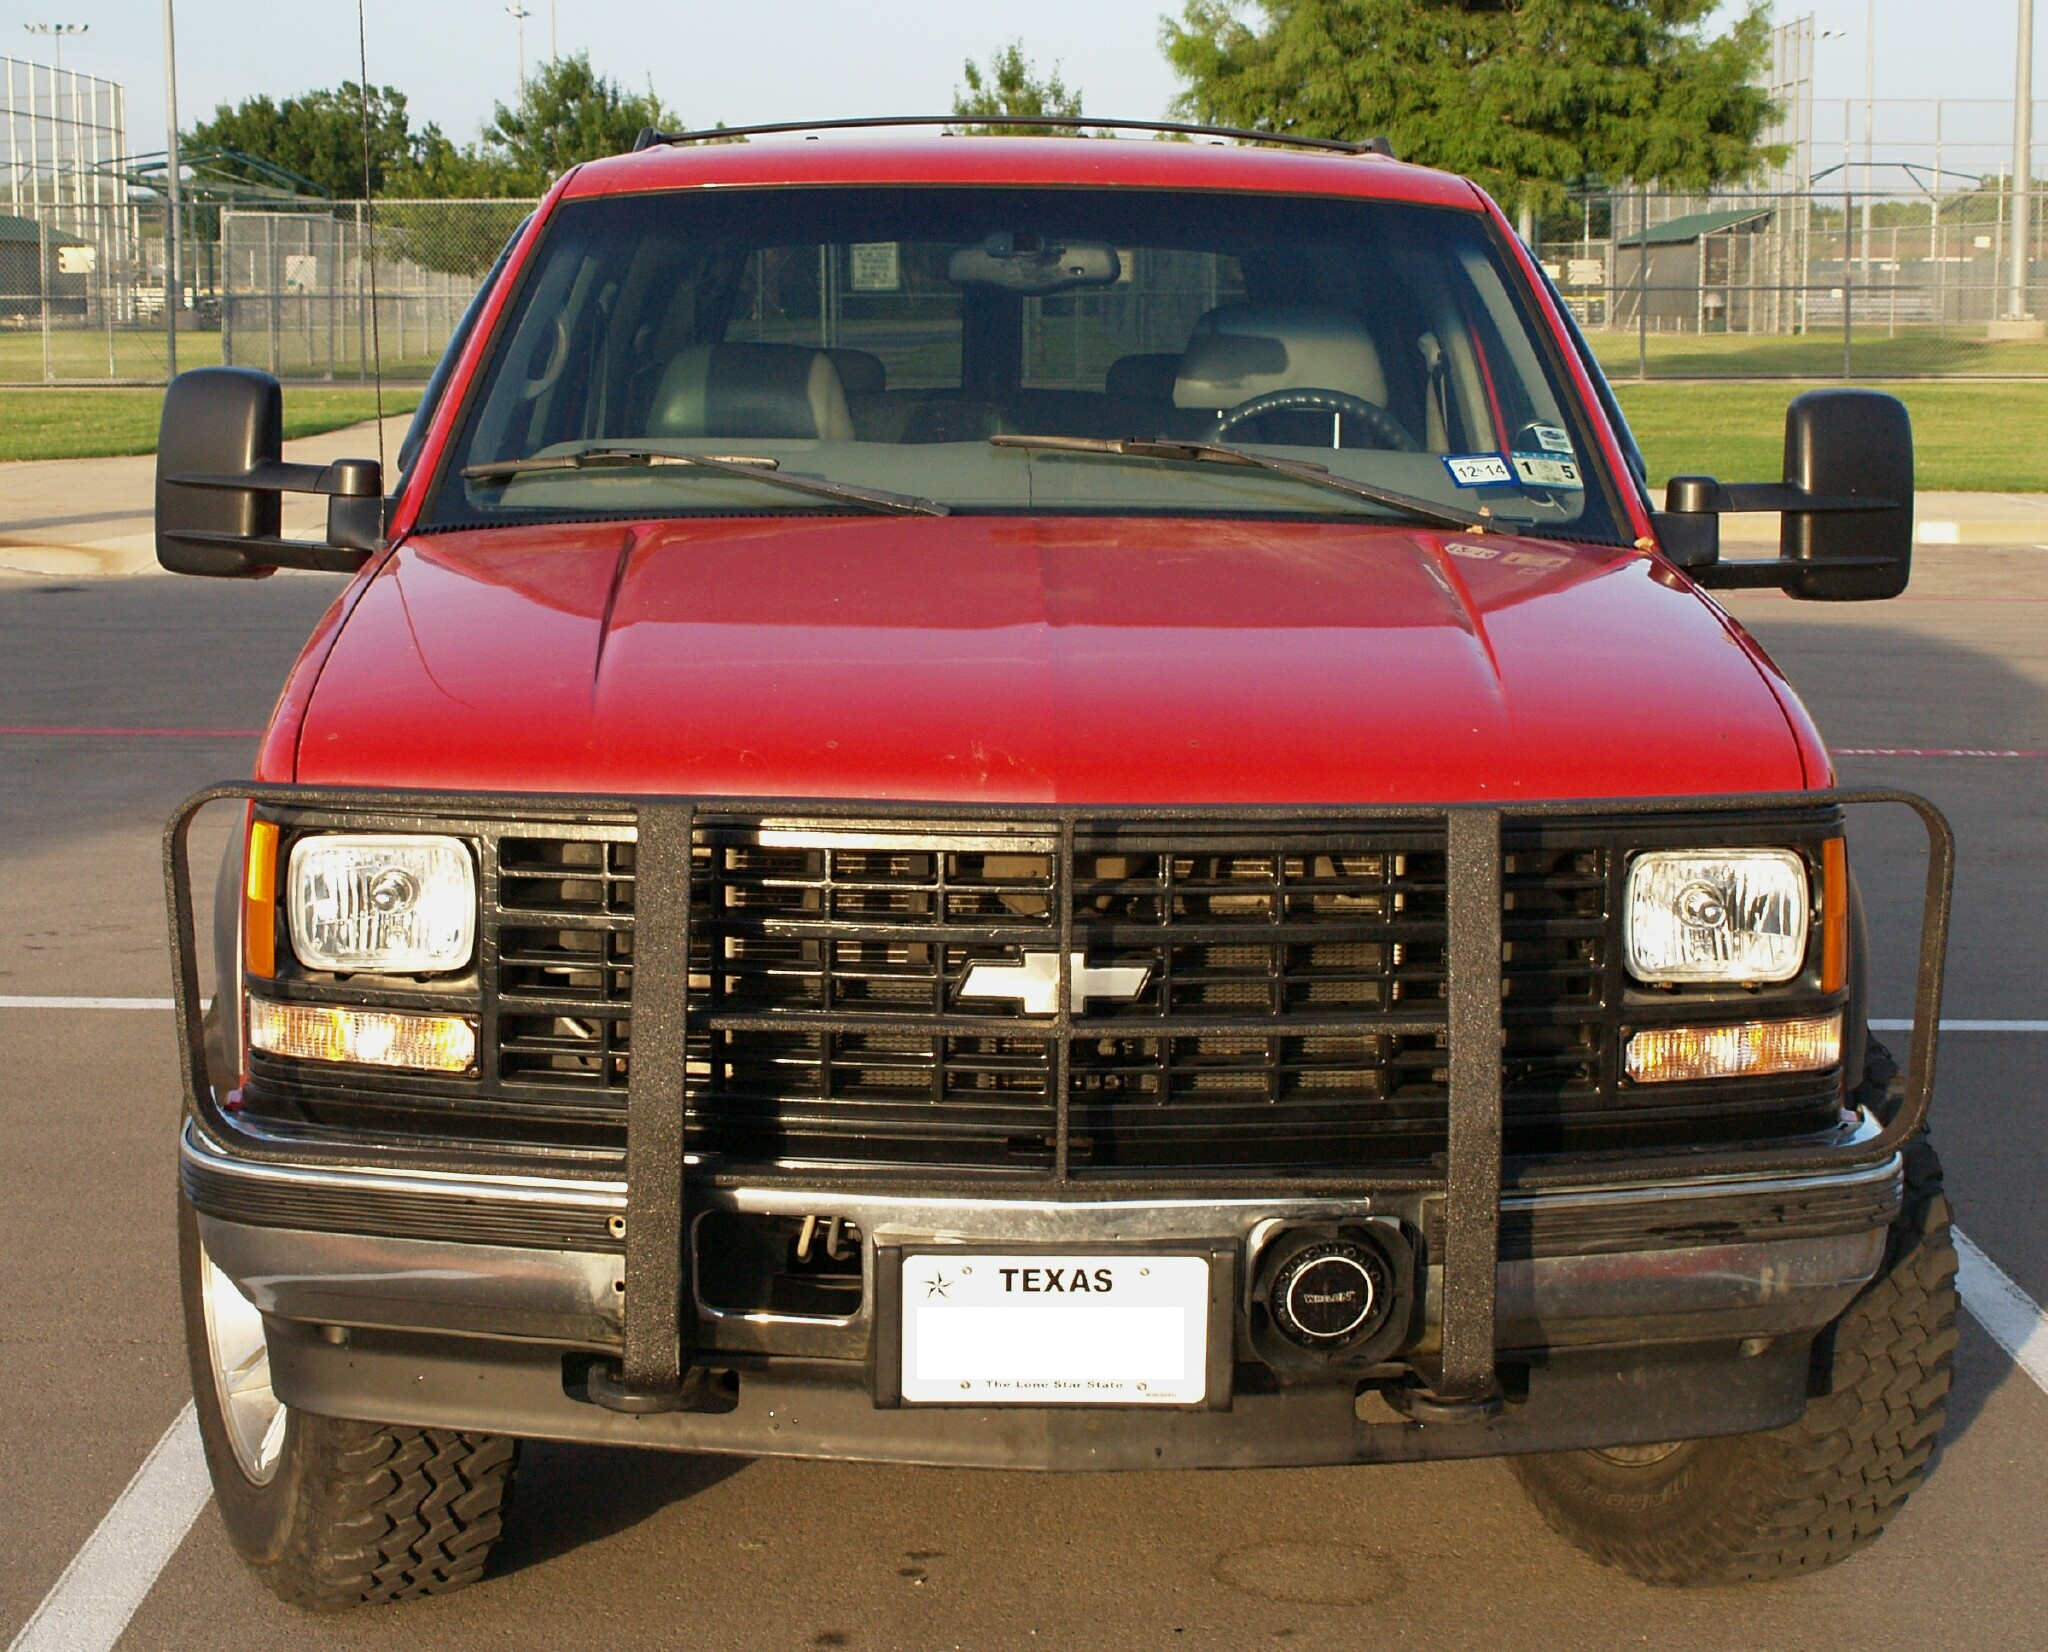 Buy used 1998 CHEVROLET SUBURBAN 6.5L DIESEL, 4X4, Hard to ...